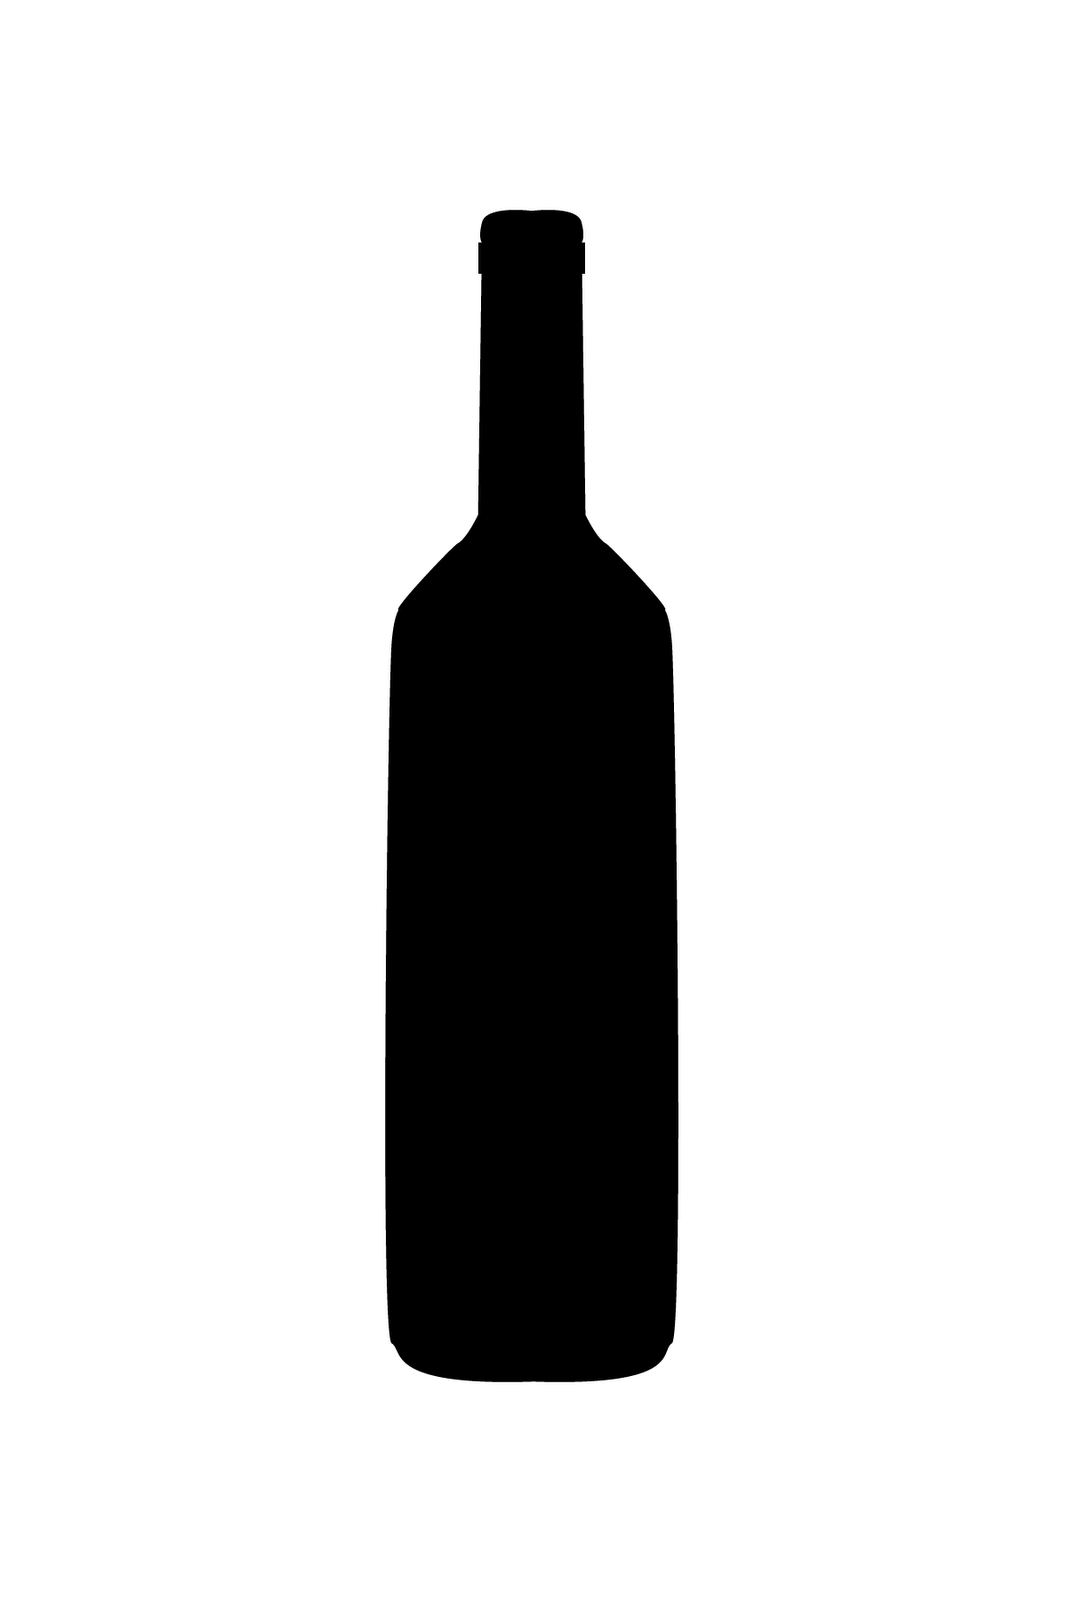 Principles of Graphic Art: Bottle Silhouettes